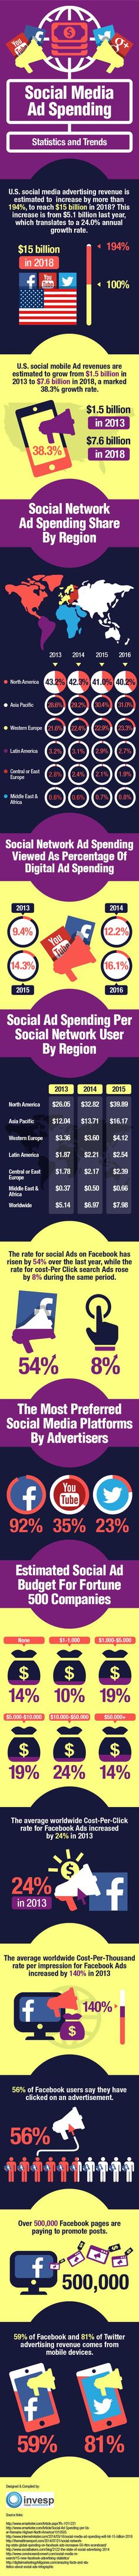 Ad Spending - Statistics and Trends. *I chose this pin because it gives is an idea of social media Ad spending.